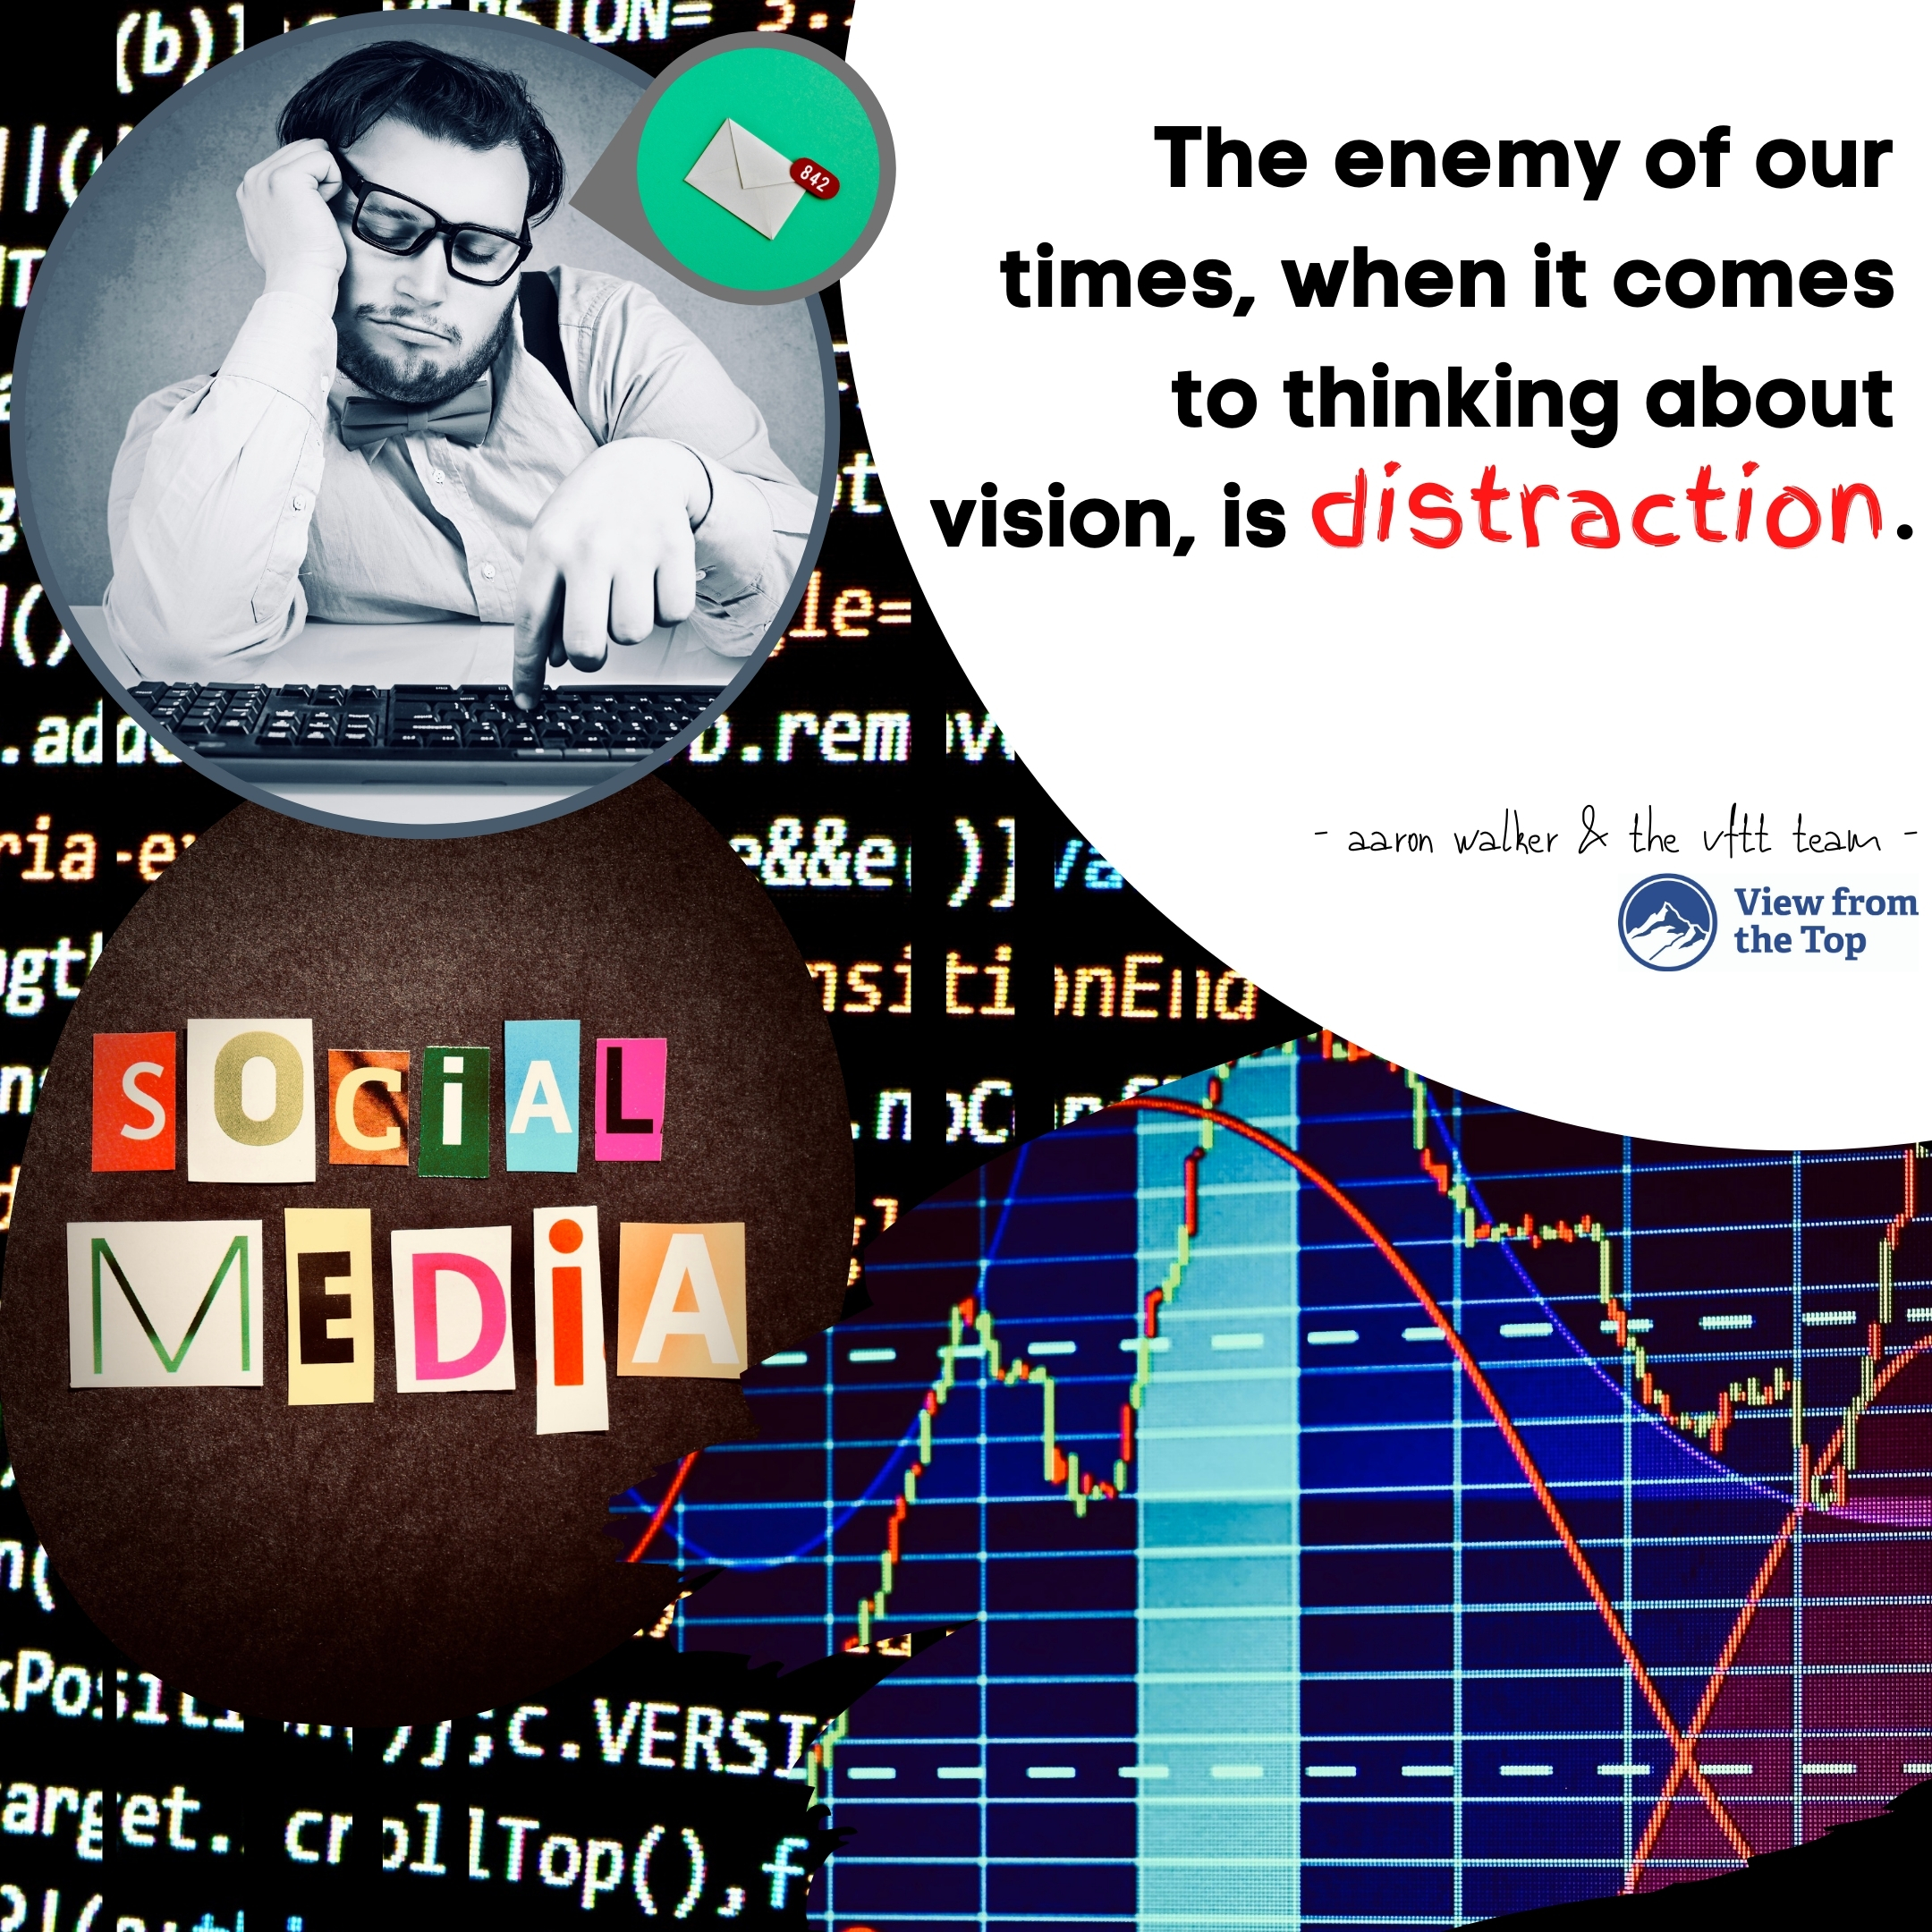 The enemy of our times, when it comes to thinking about vision, is distraction. (1)